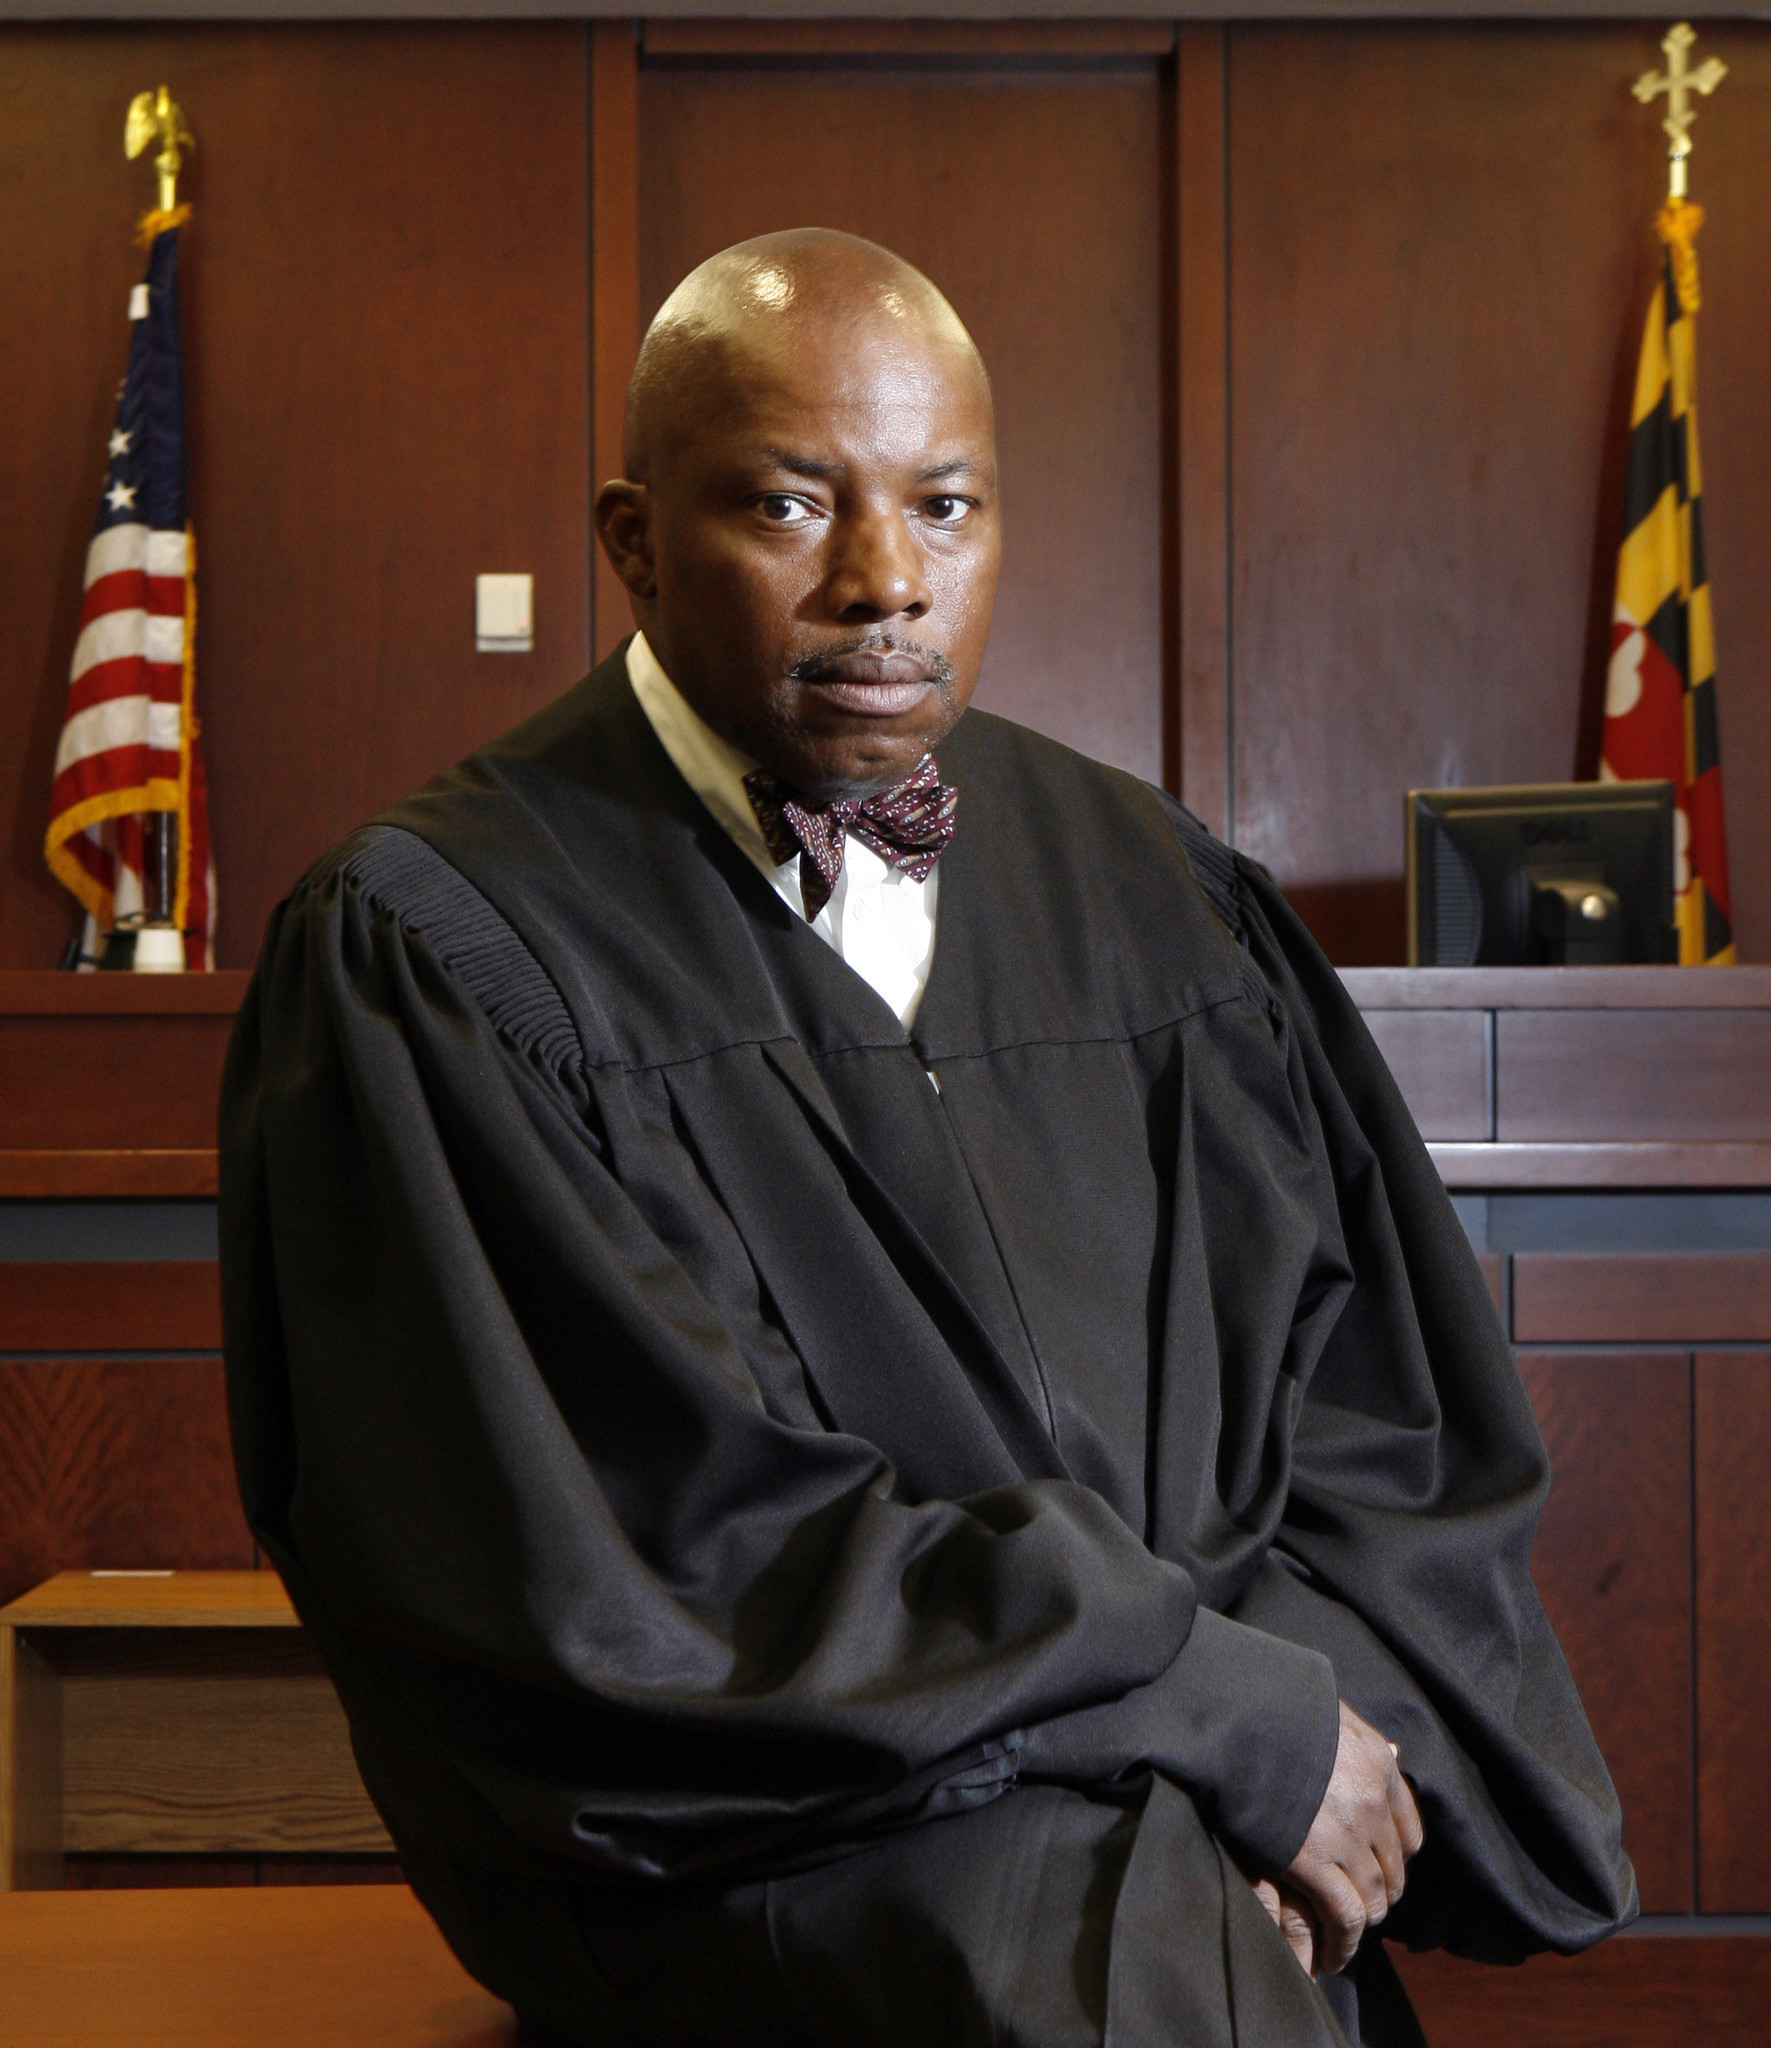 Judge Dawson Head Of The Juvenile Court Has Been